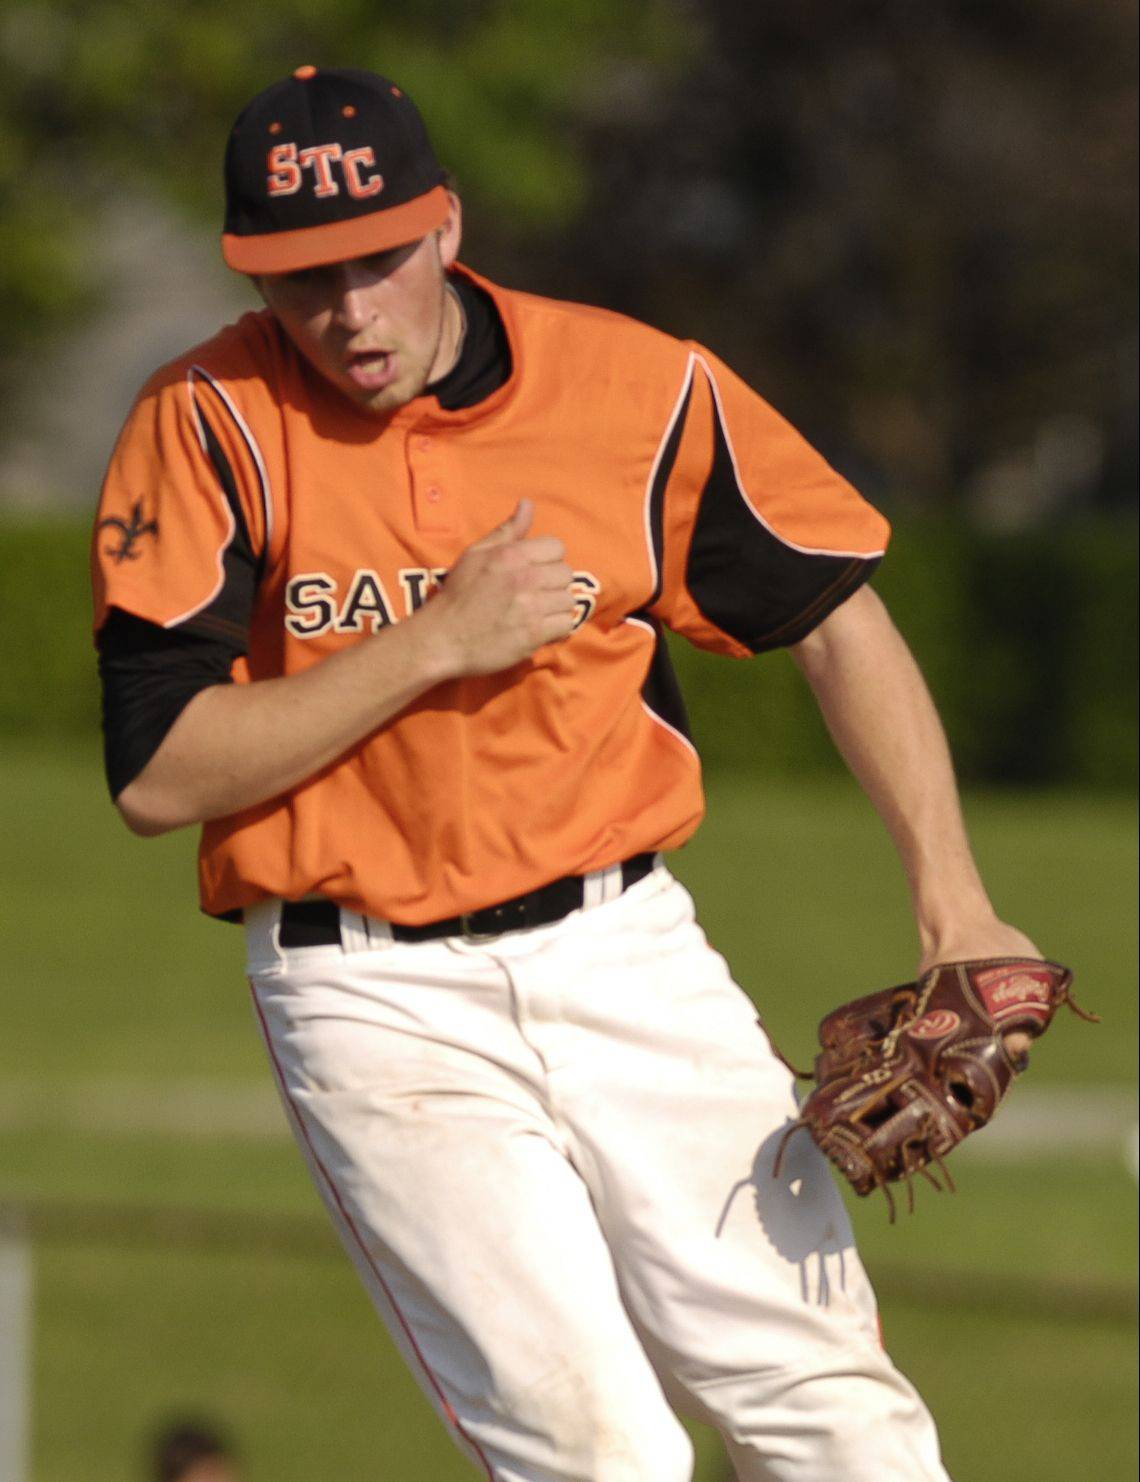 St. Charles East pitcher Matt Starai reacts to his strikeout that ended a 6-0 victory over Lake Park Wednesday in St. Charles.